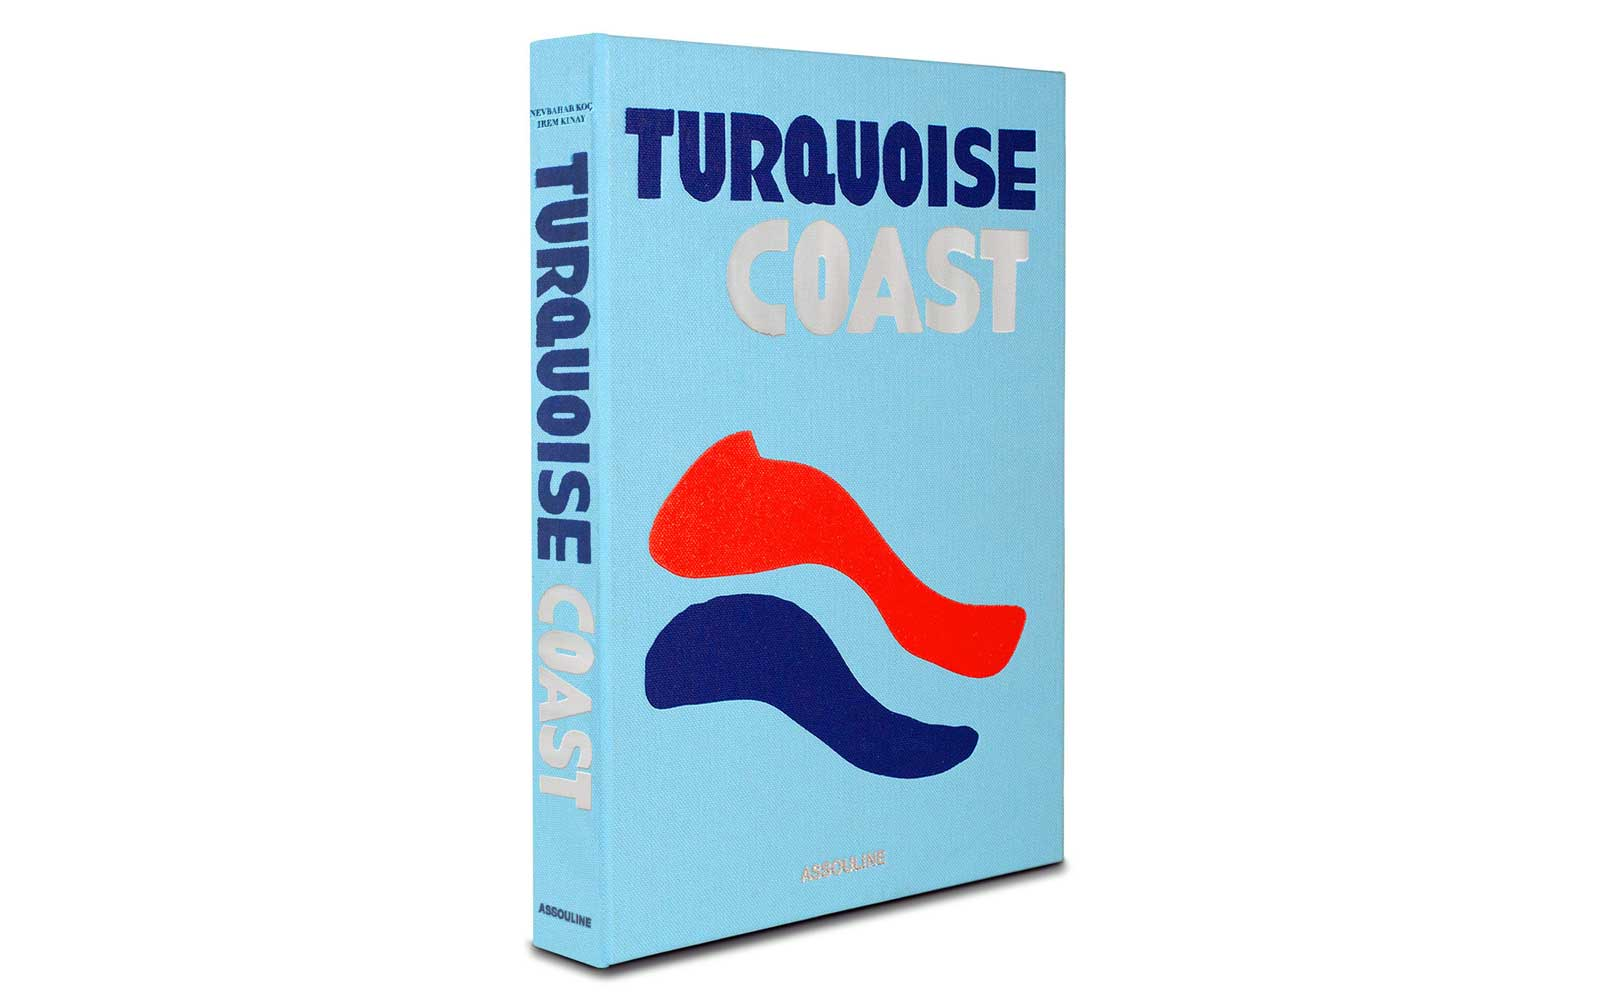 Turquoise Coast Book by Kinay